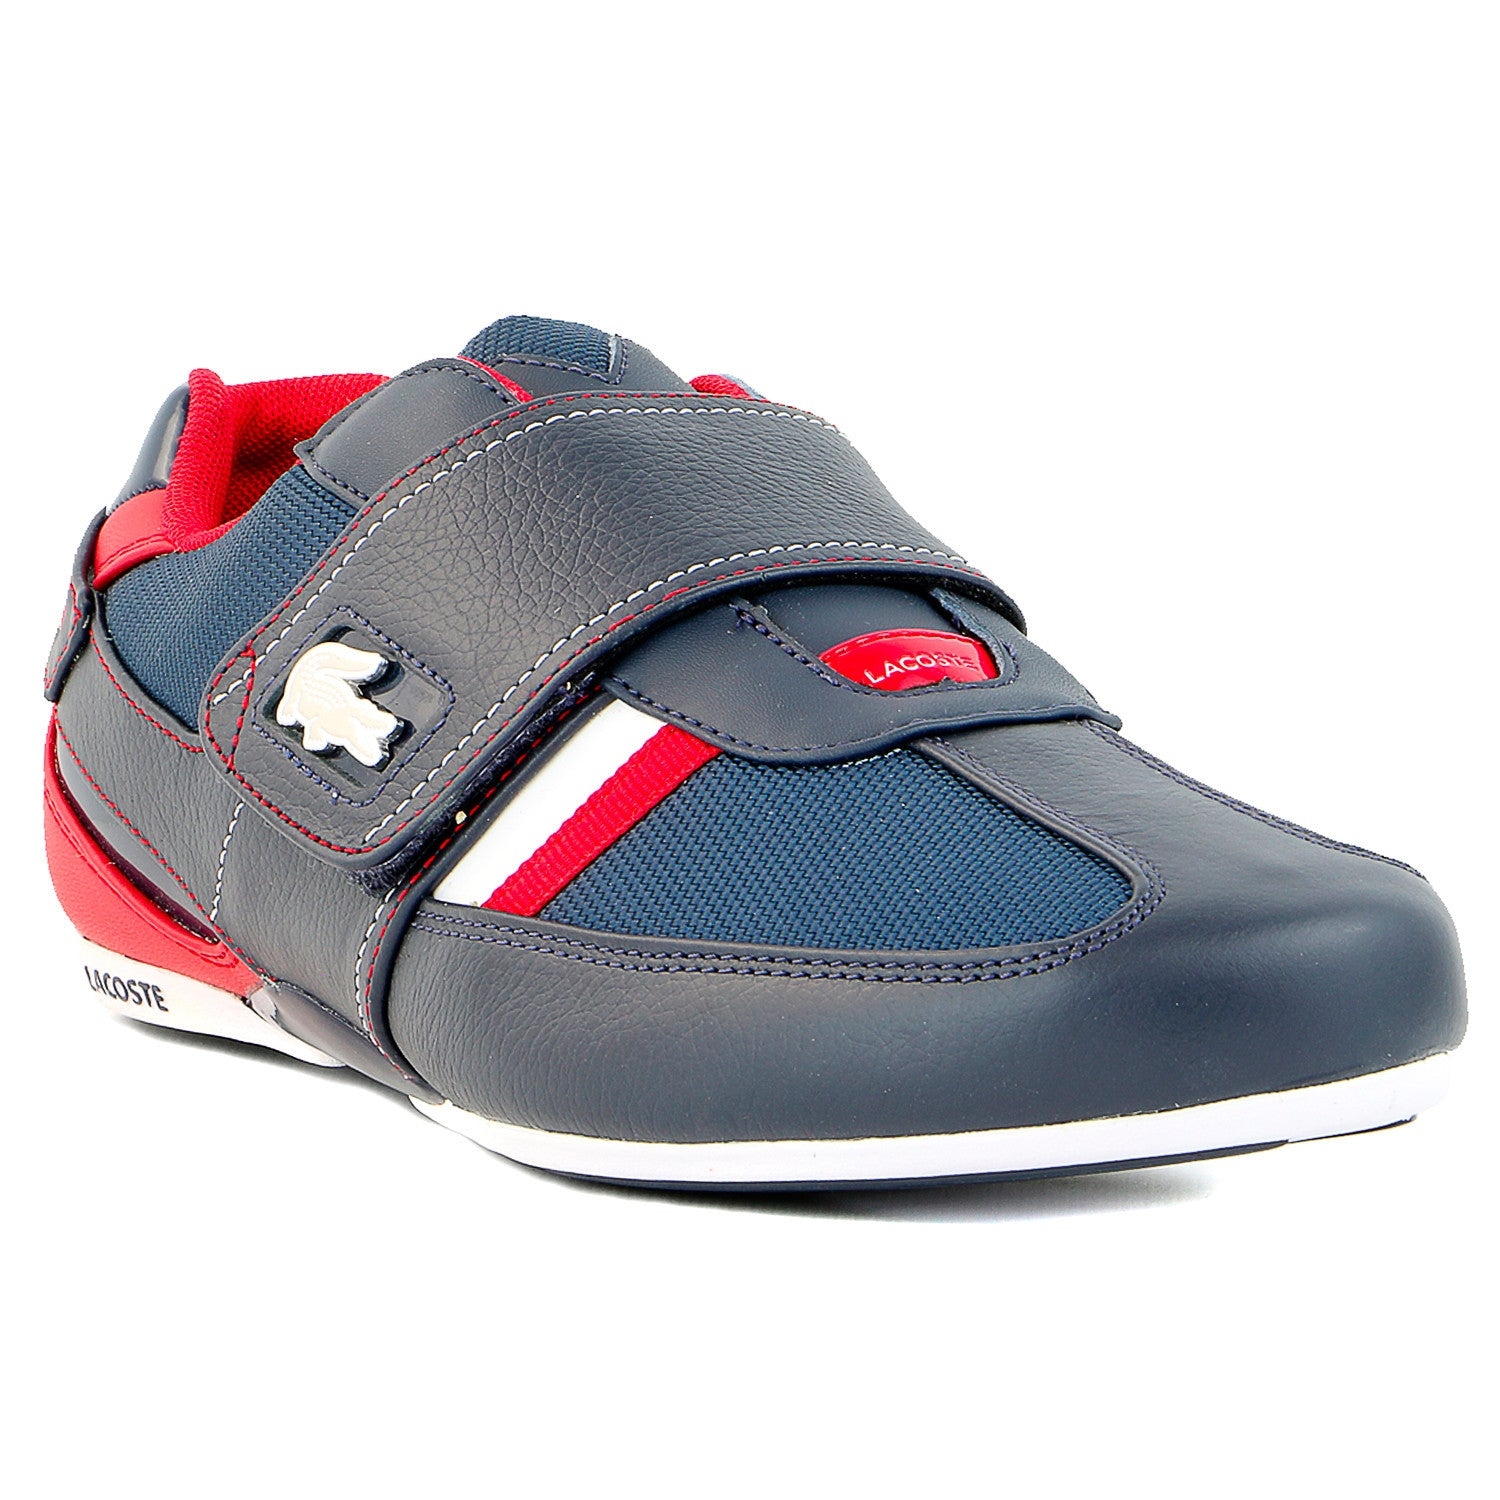 4f01f8d3fdd1 Lacoste Shoes Protected Bst Sneaker 28Spm0177-1P4 - CONVOLVULUS VITAMI -  Shoplifestyle